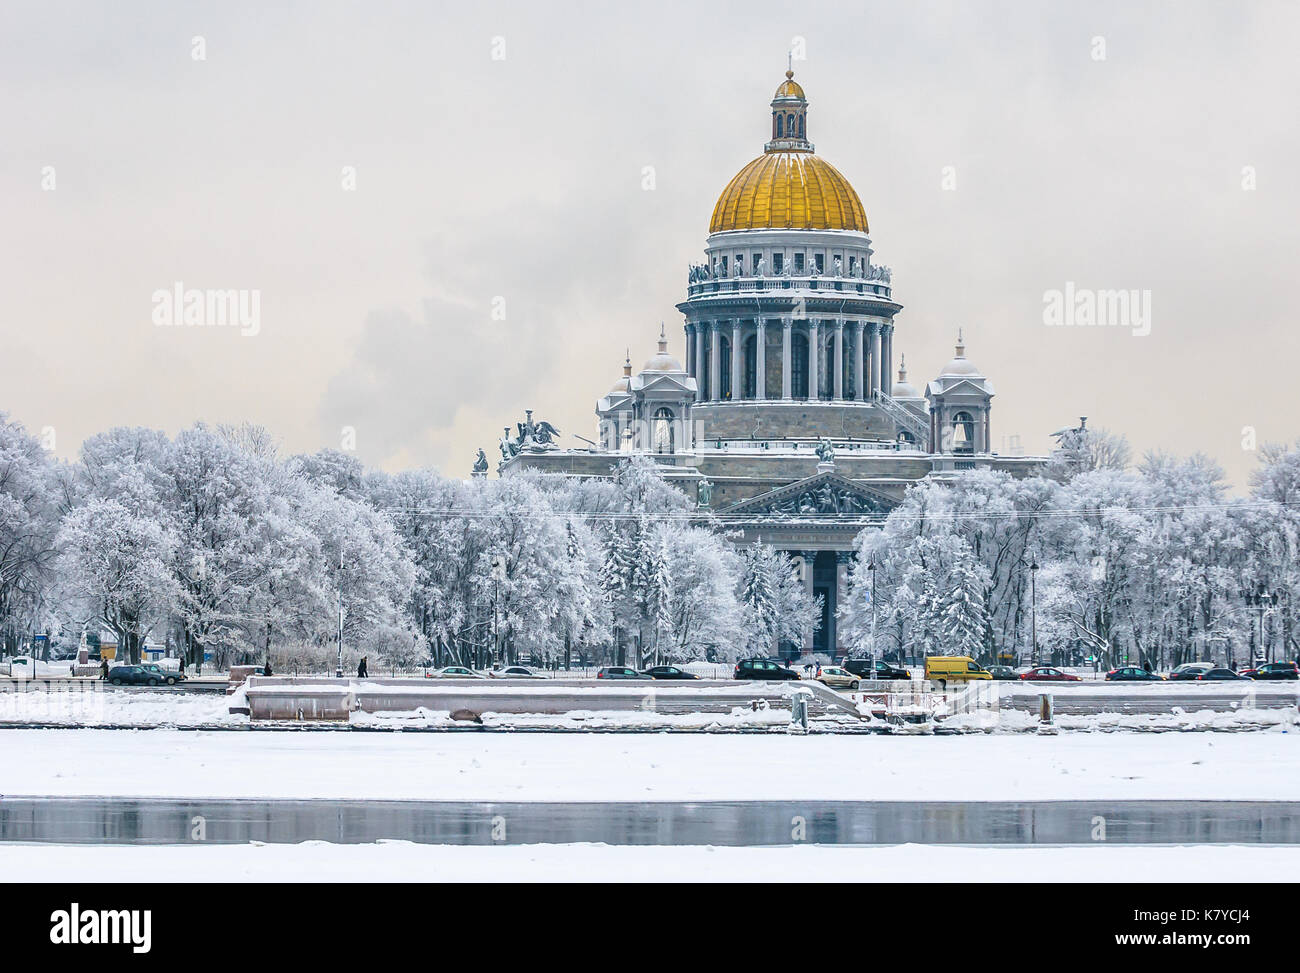 Saint Isaac's Cathedral in winter, Saint Petersburg, Russia - Stock Image